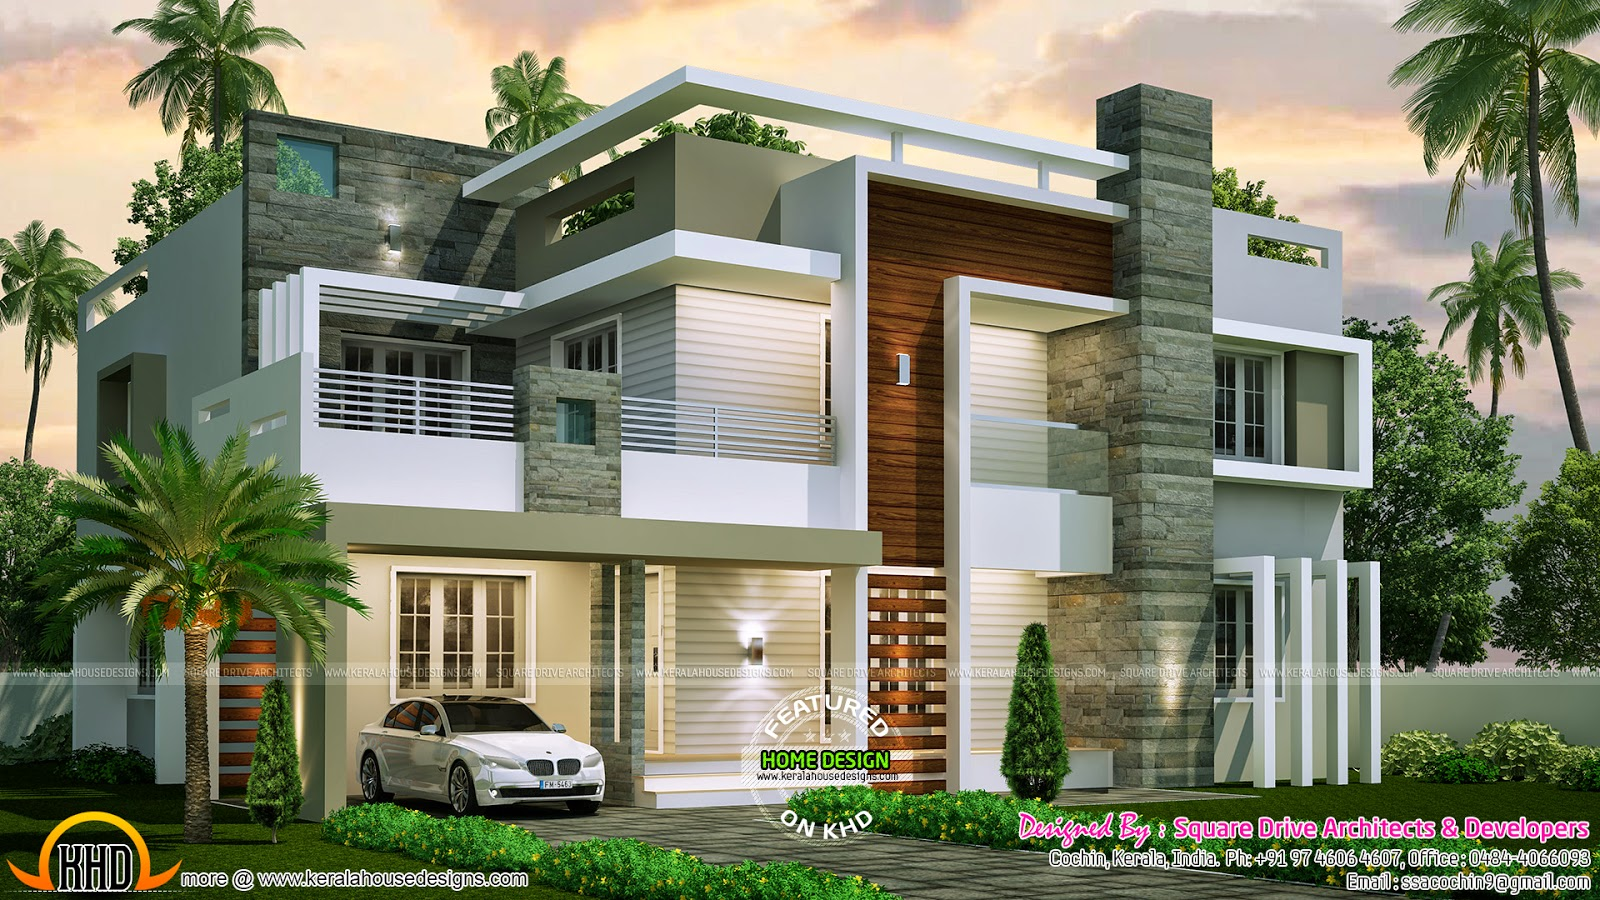 4 bedroom contemporary home design kerala home design for Best modern villa designs